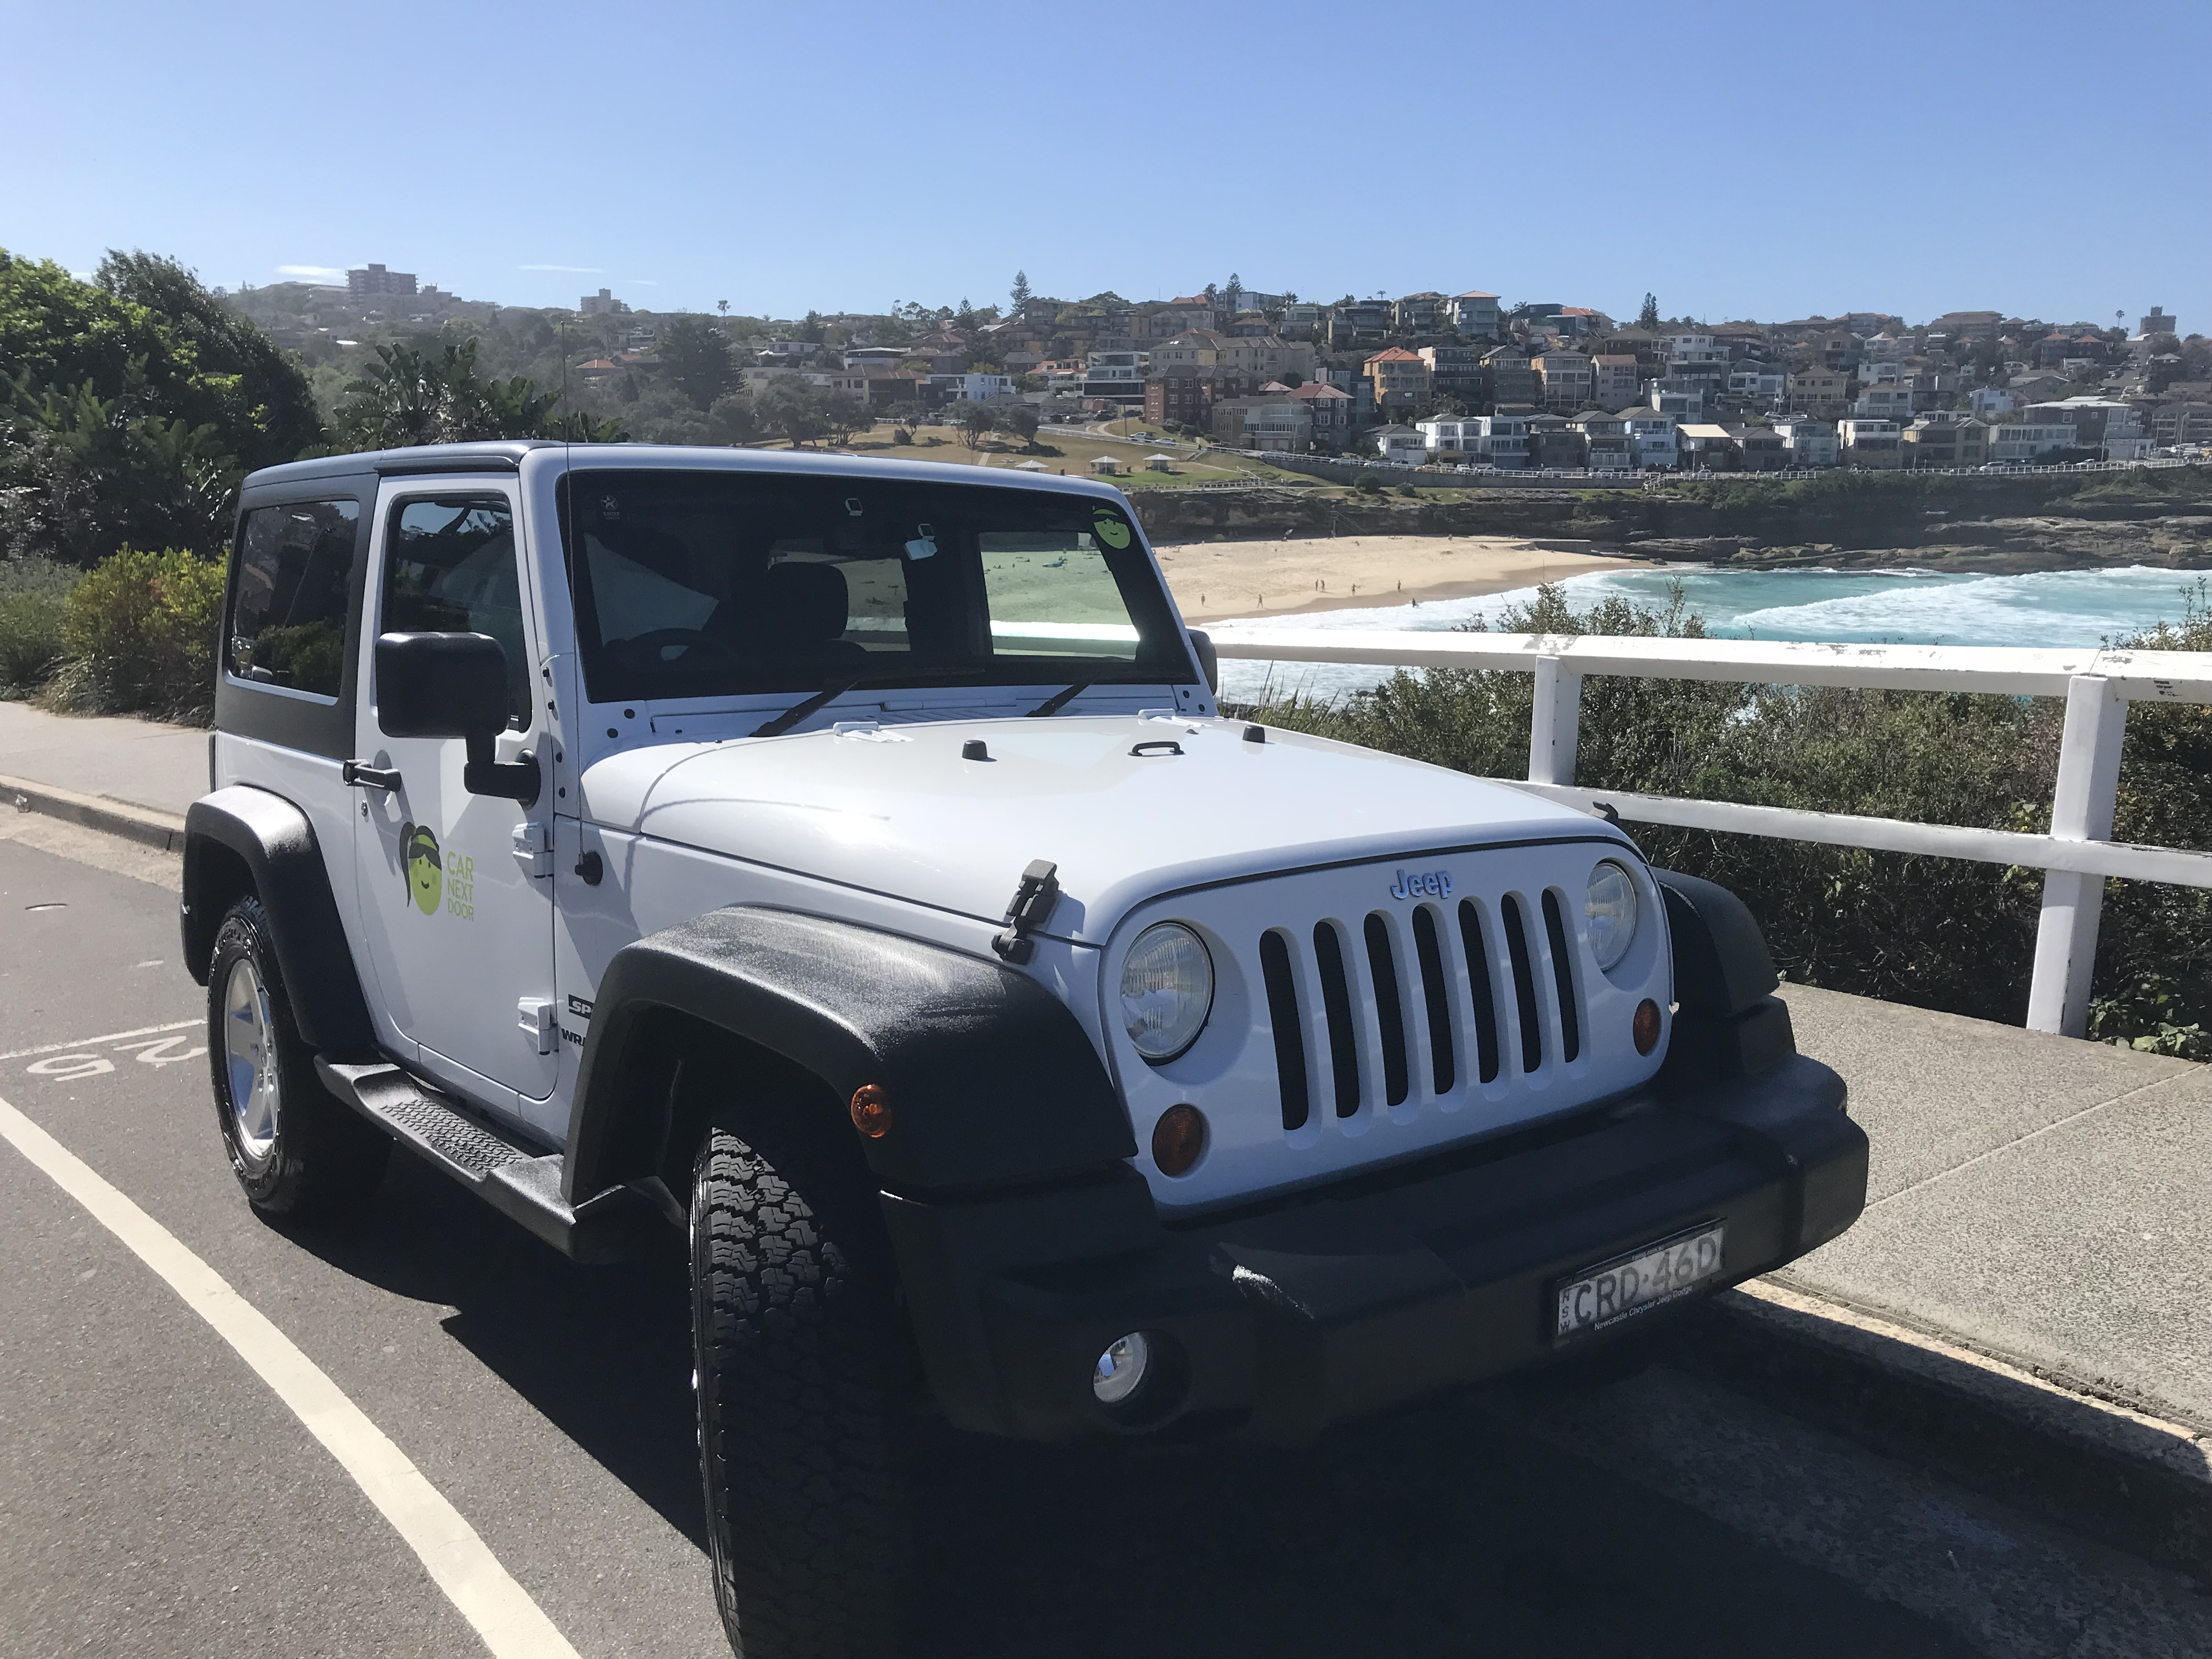 Picture of Toni's 2013 Jeep Wrangler